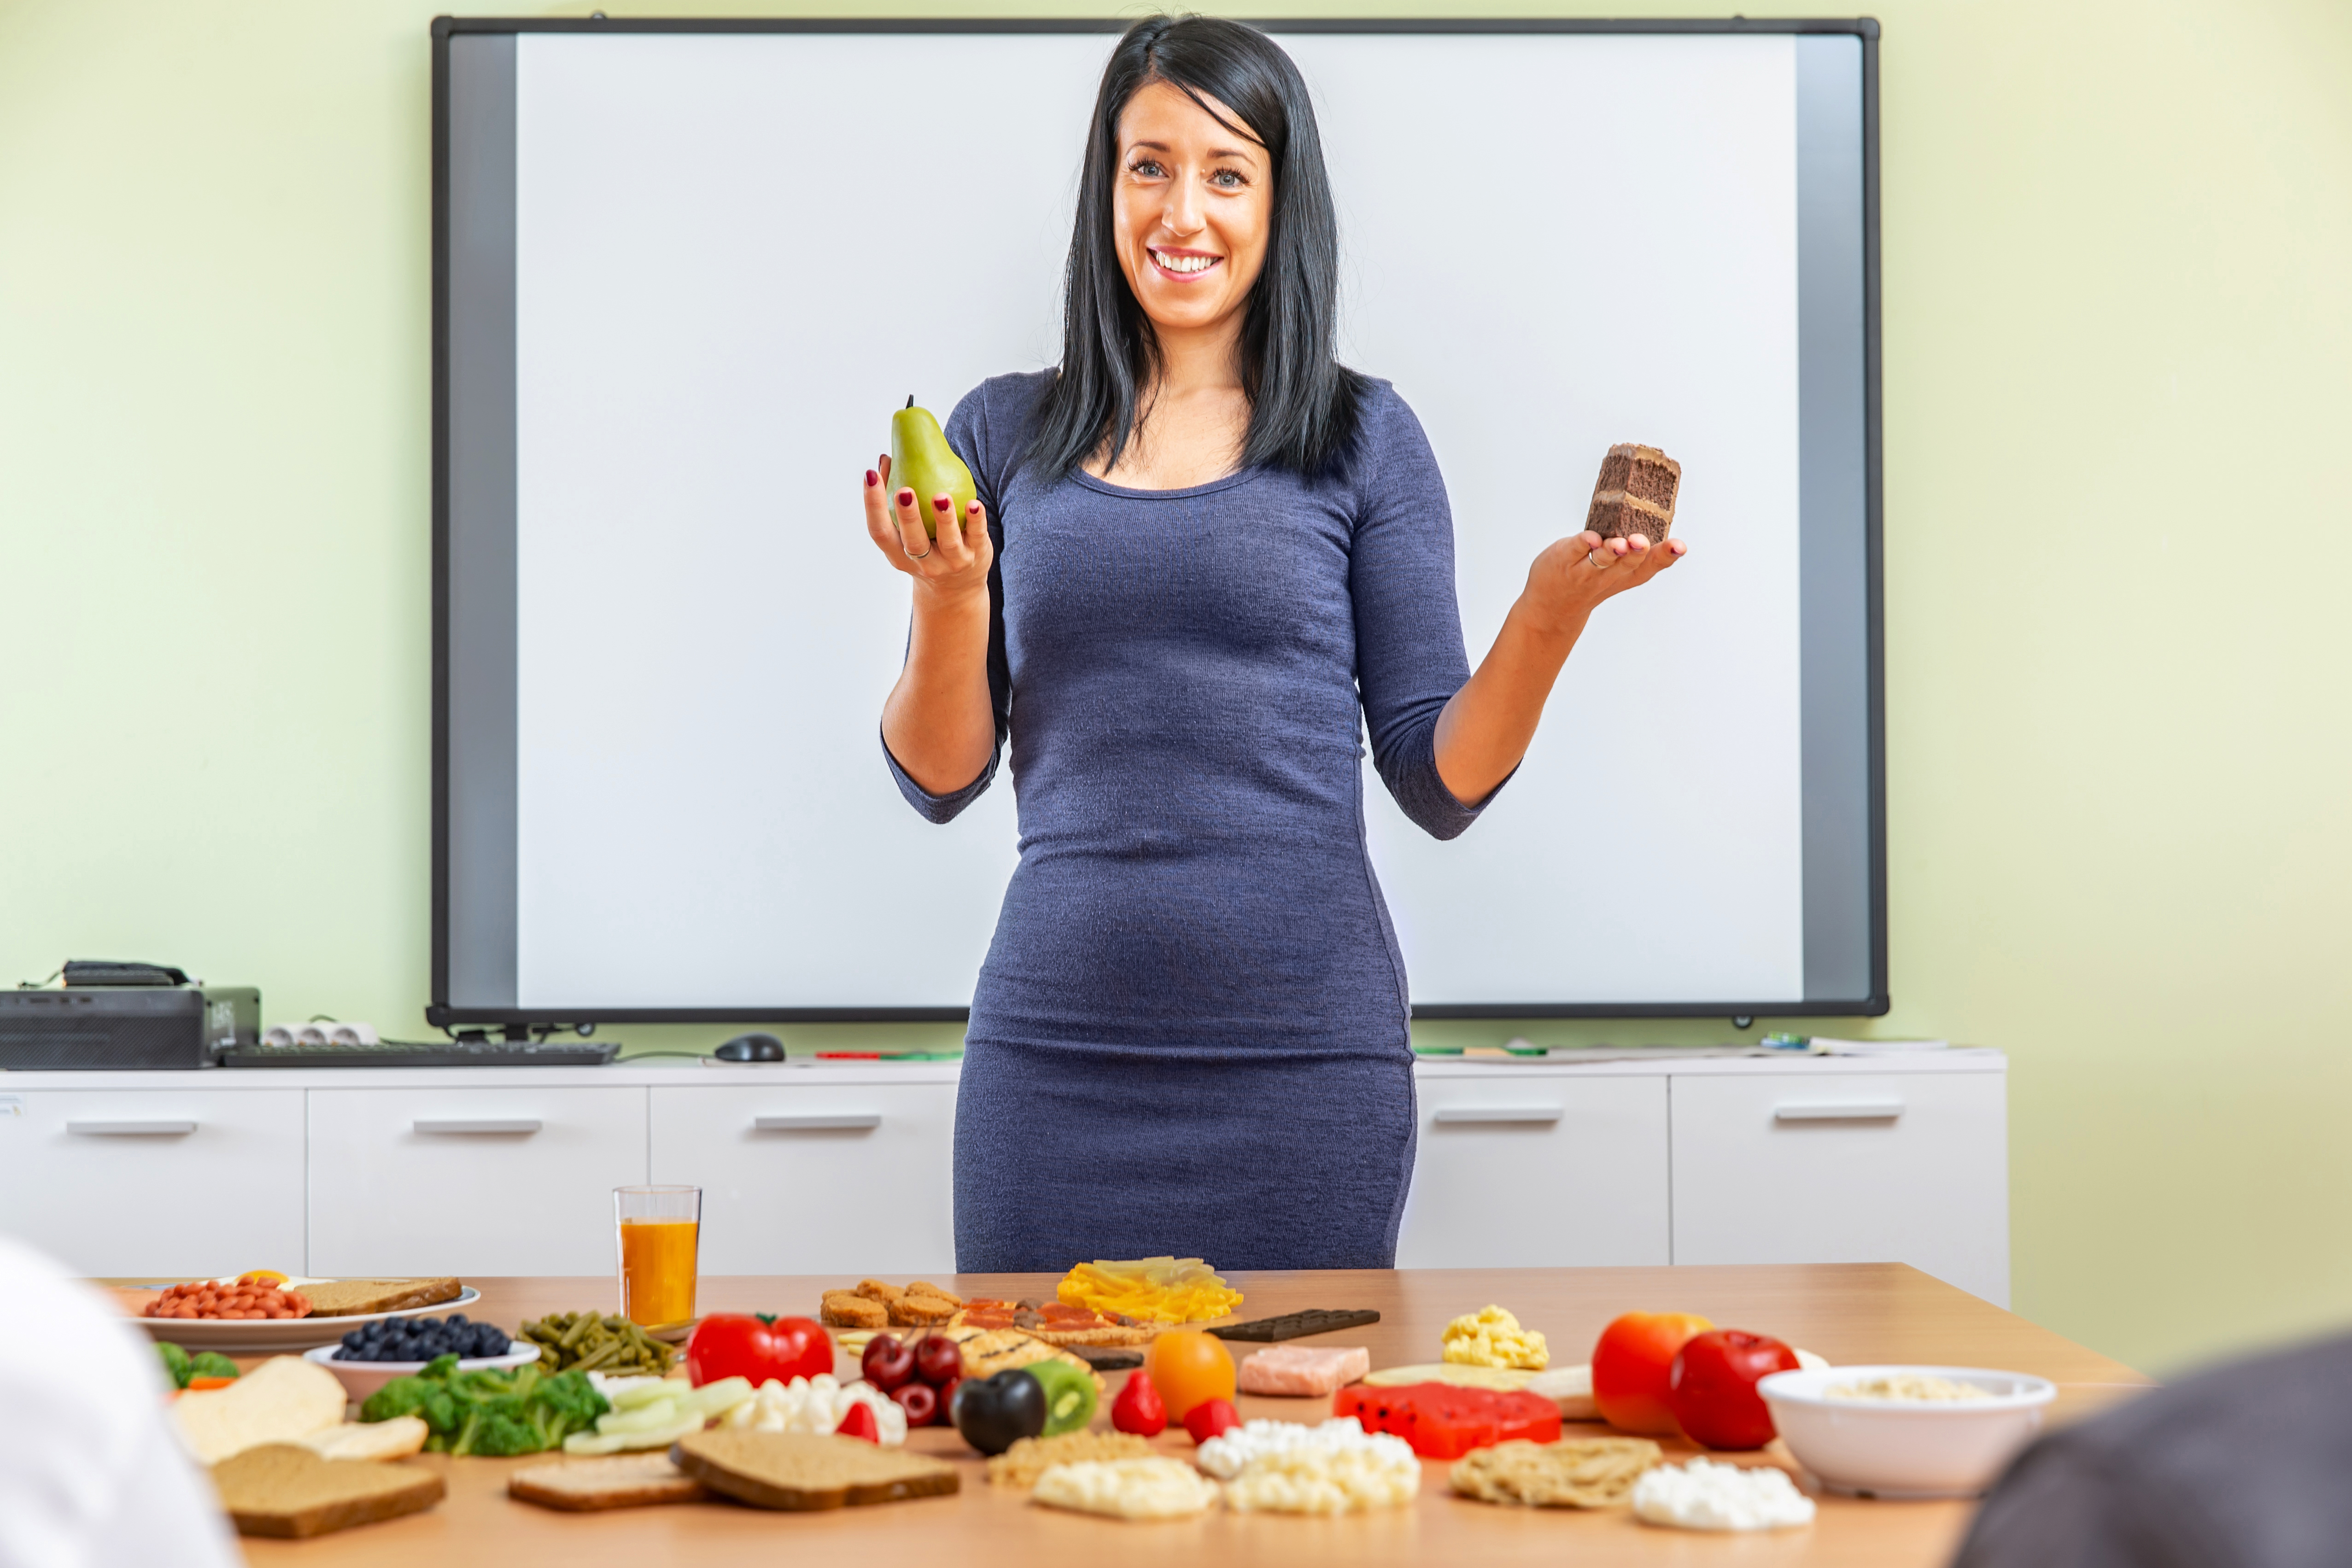 dietician educating students on healthy eating